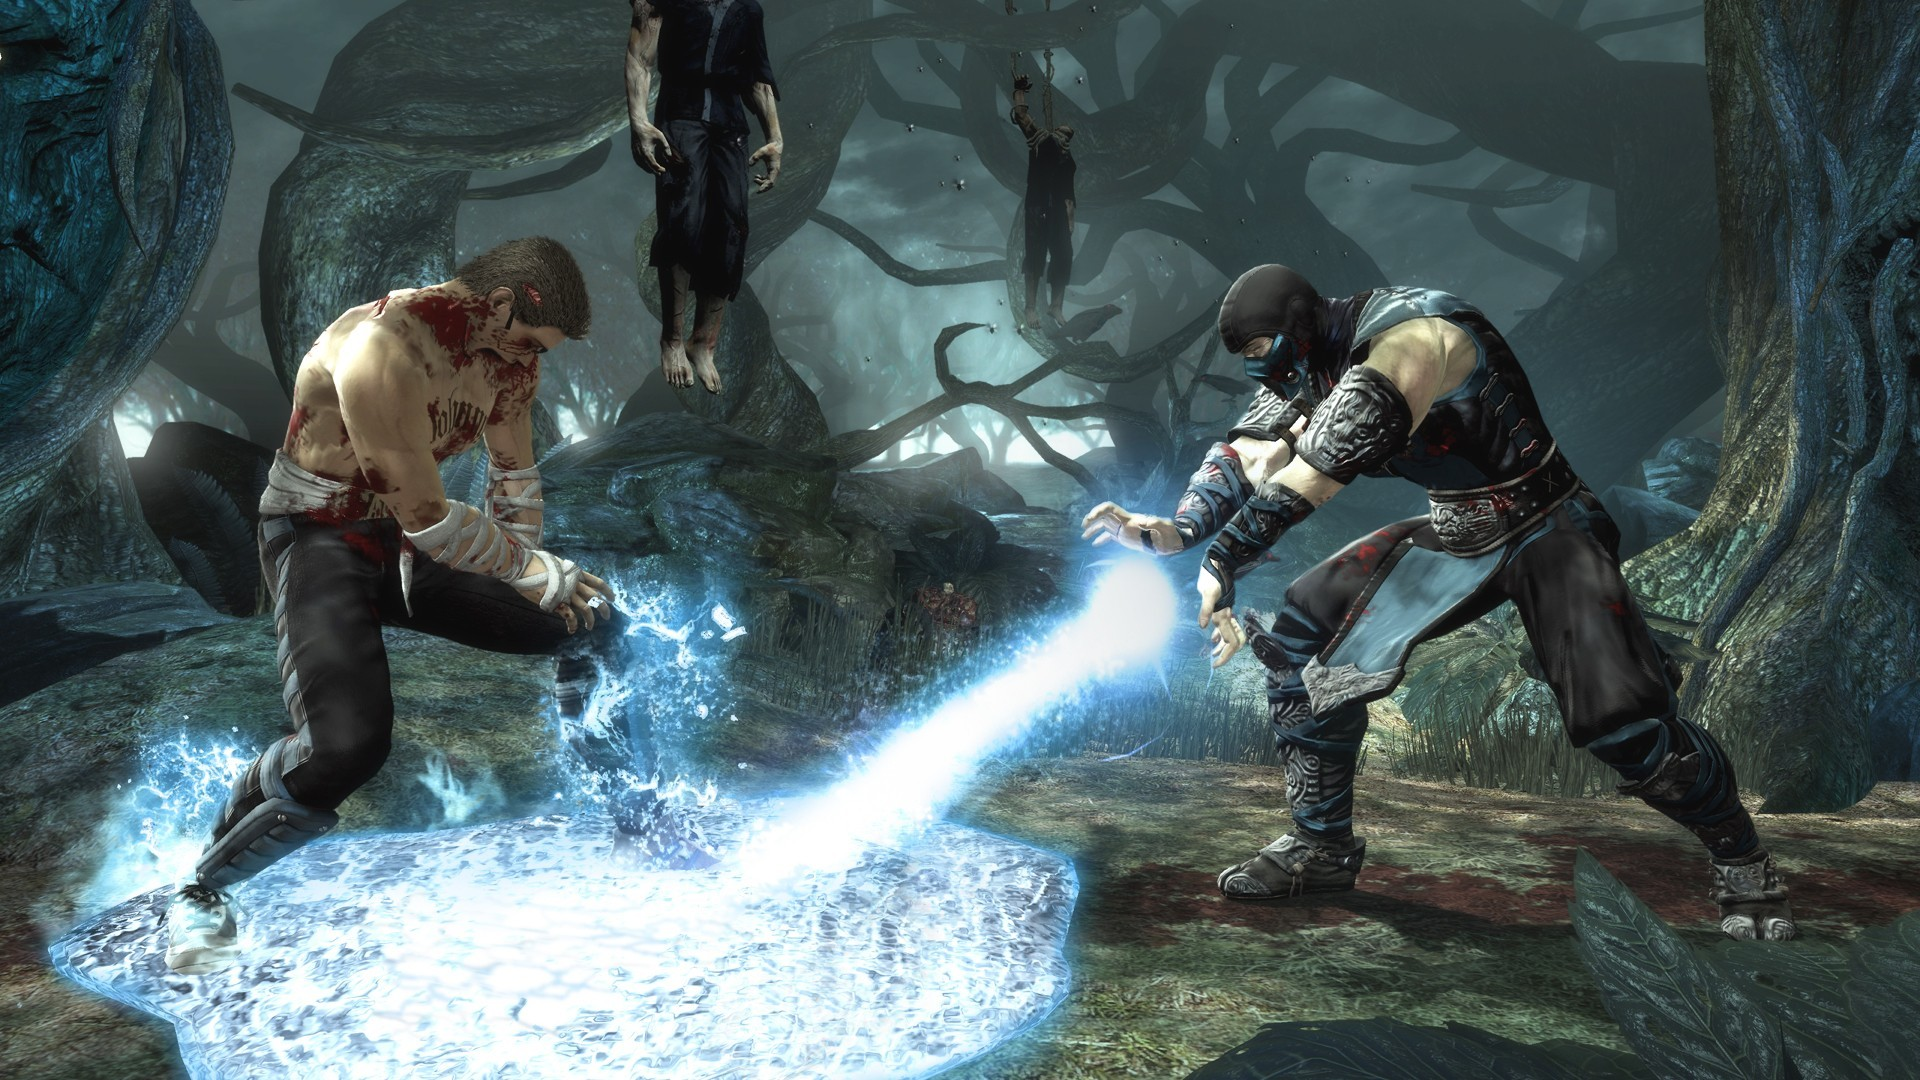 Mortal Kombat wallpaper Sub-Zero and Johnny Cage